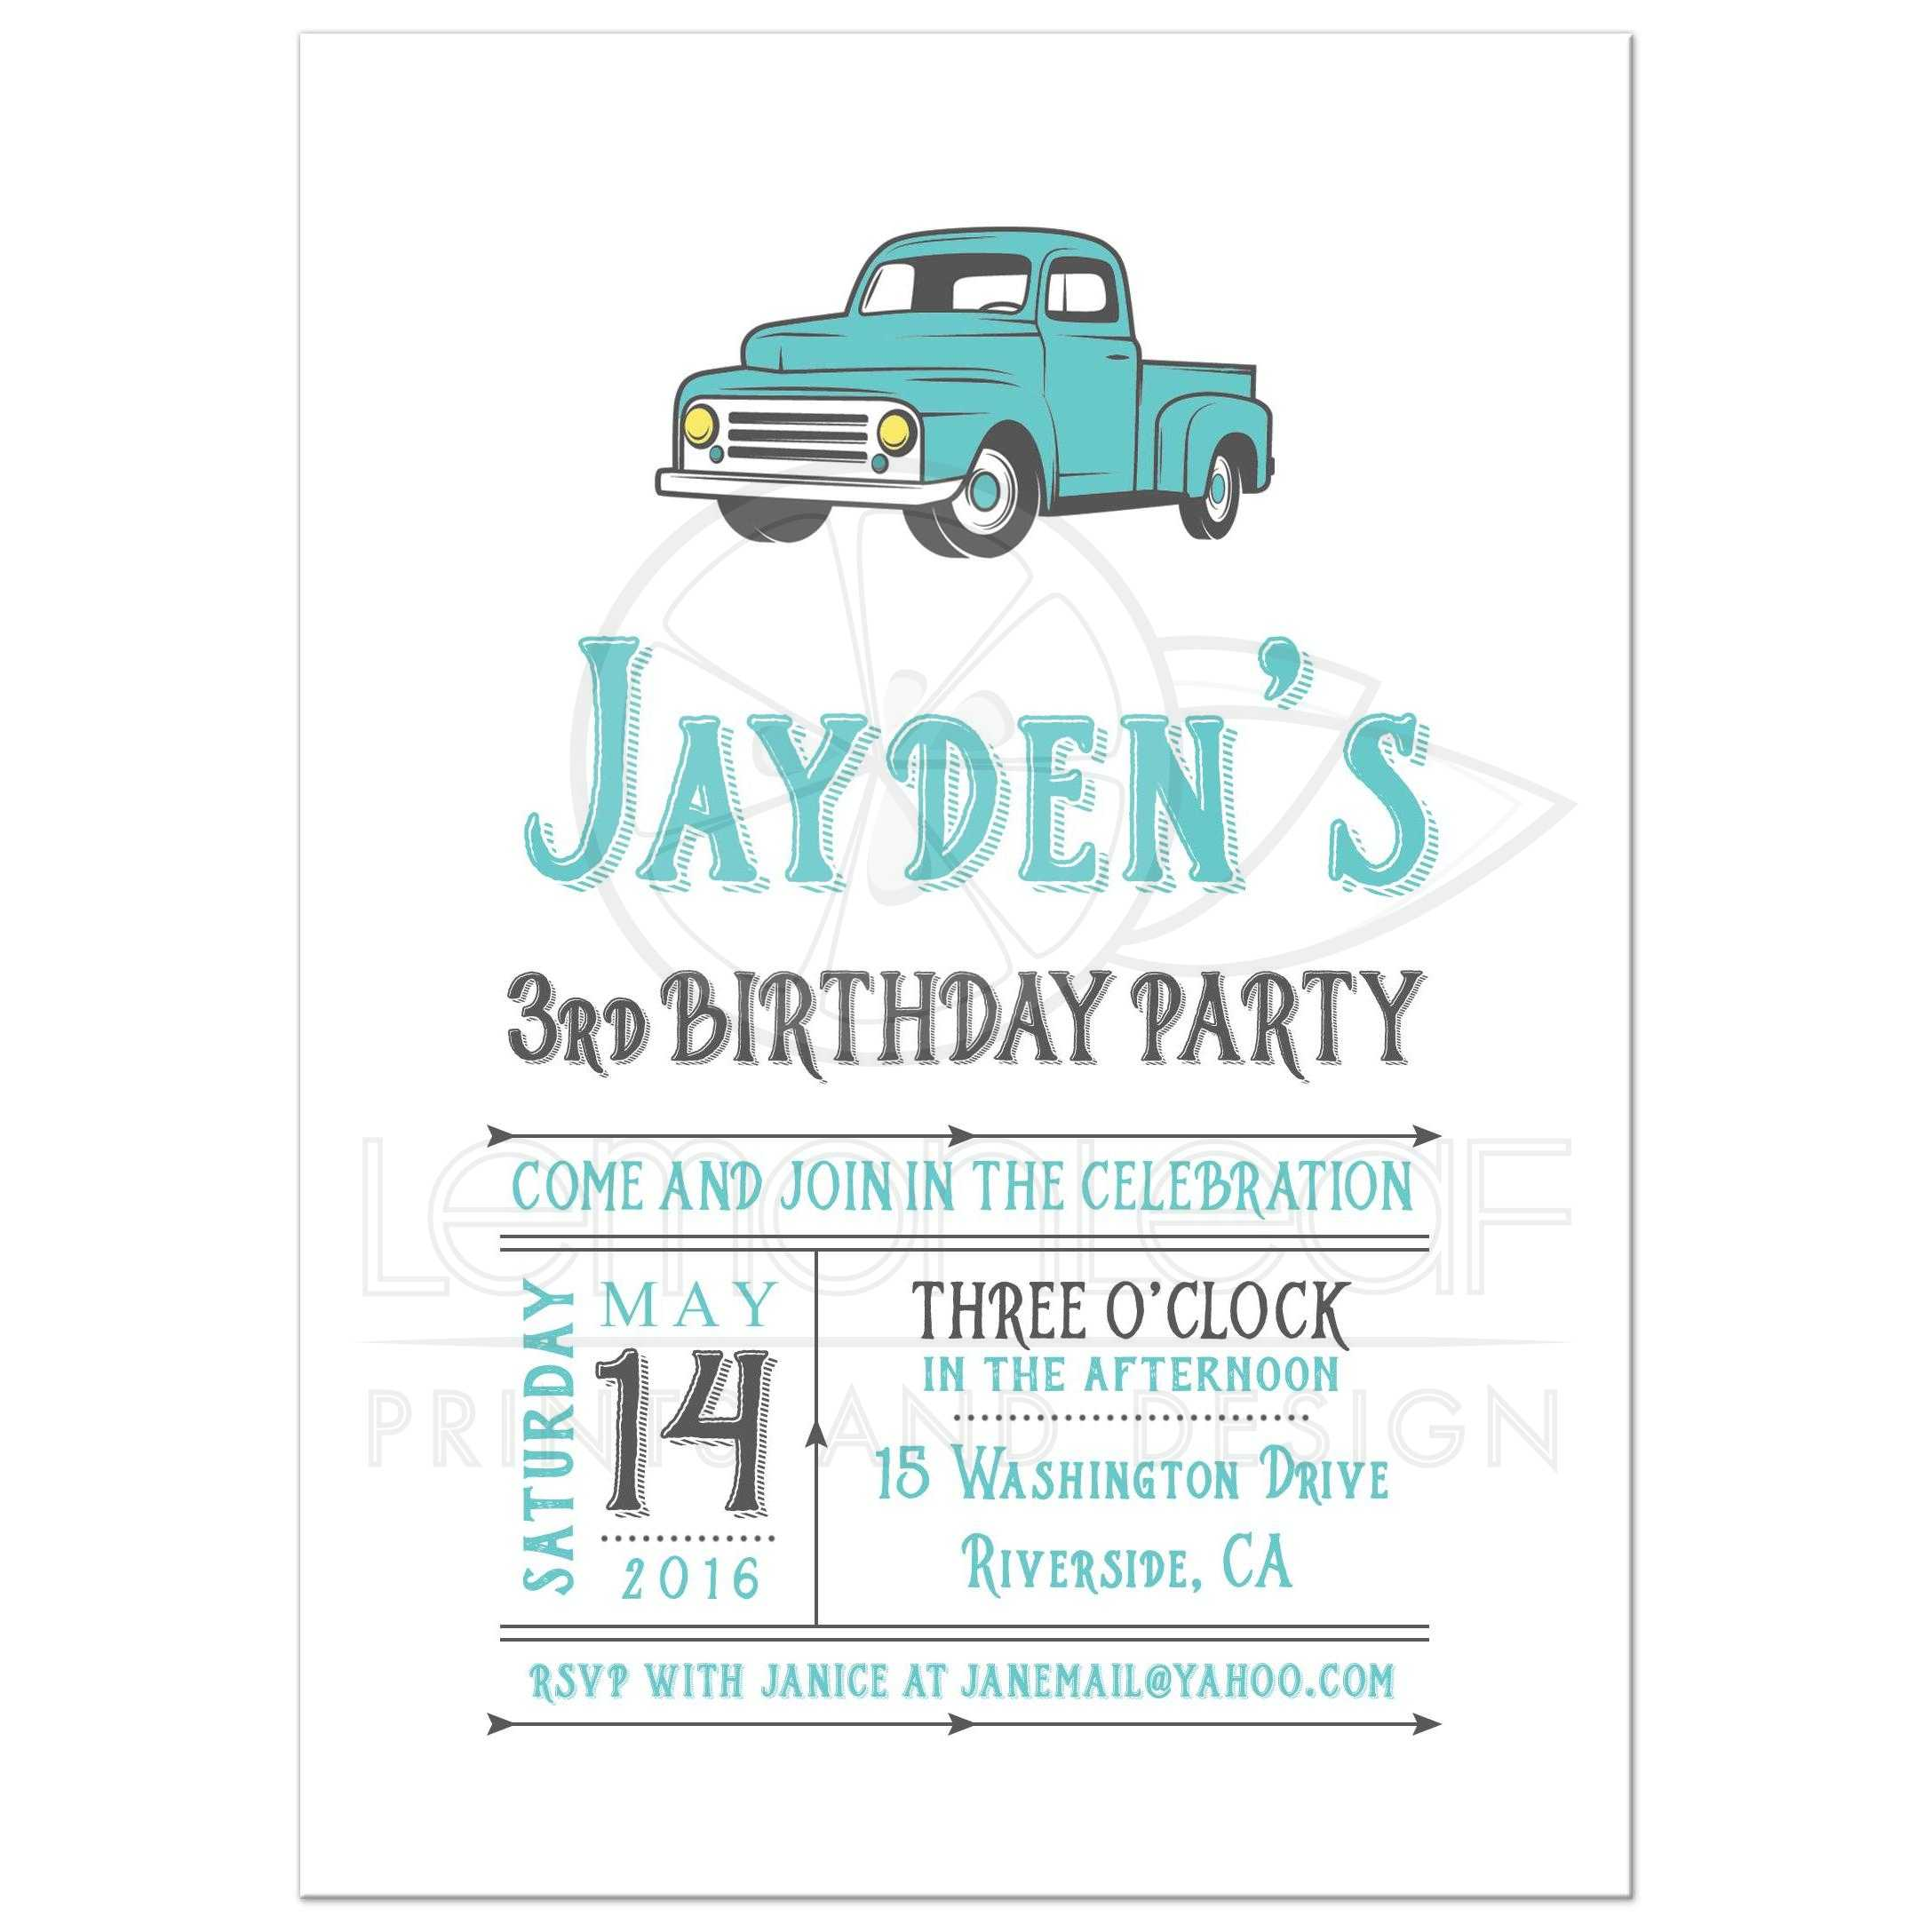 Vintage Truck Birthday Party Invitation - Teal Blue and Gray